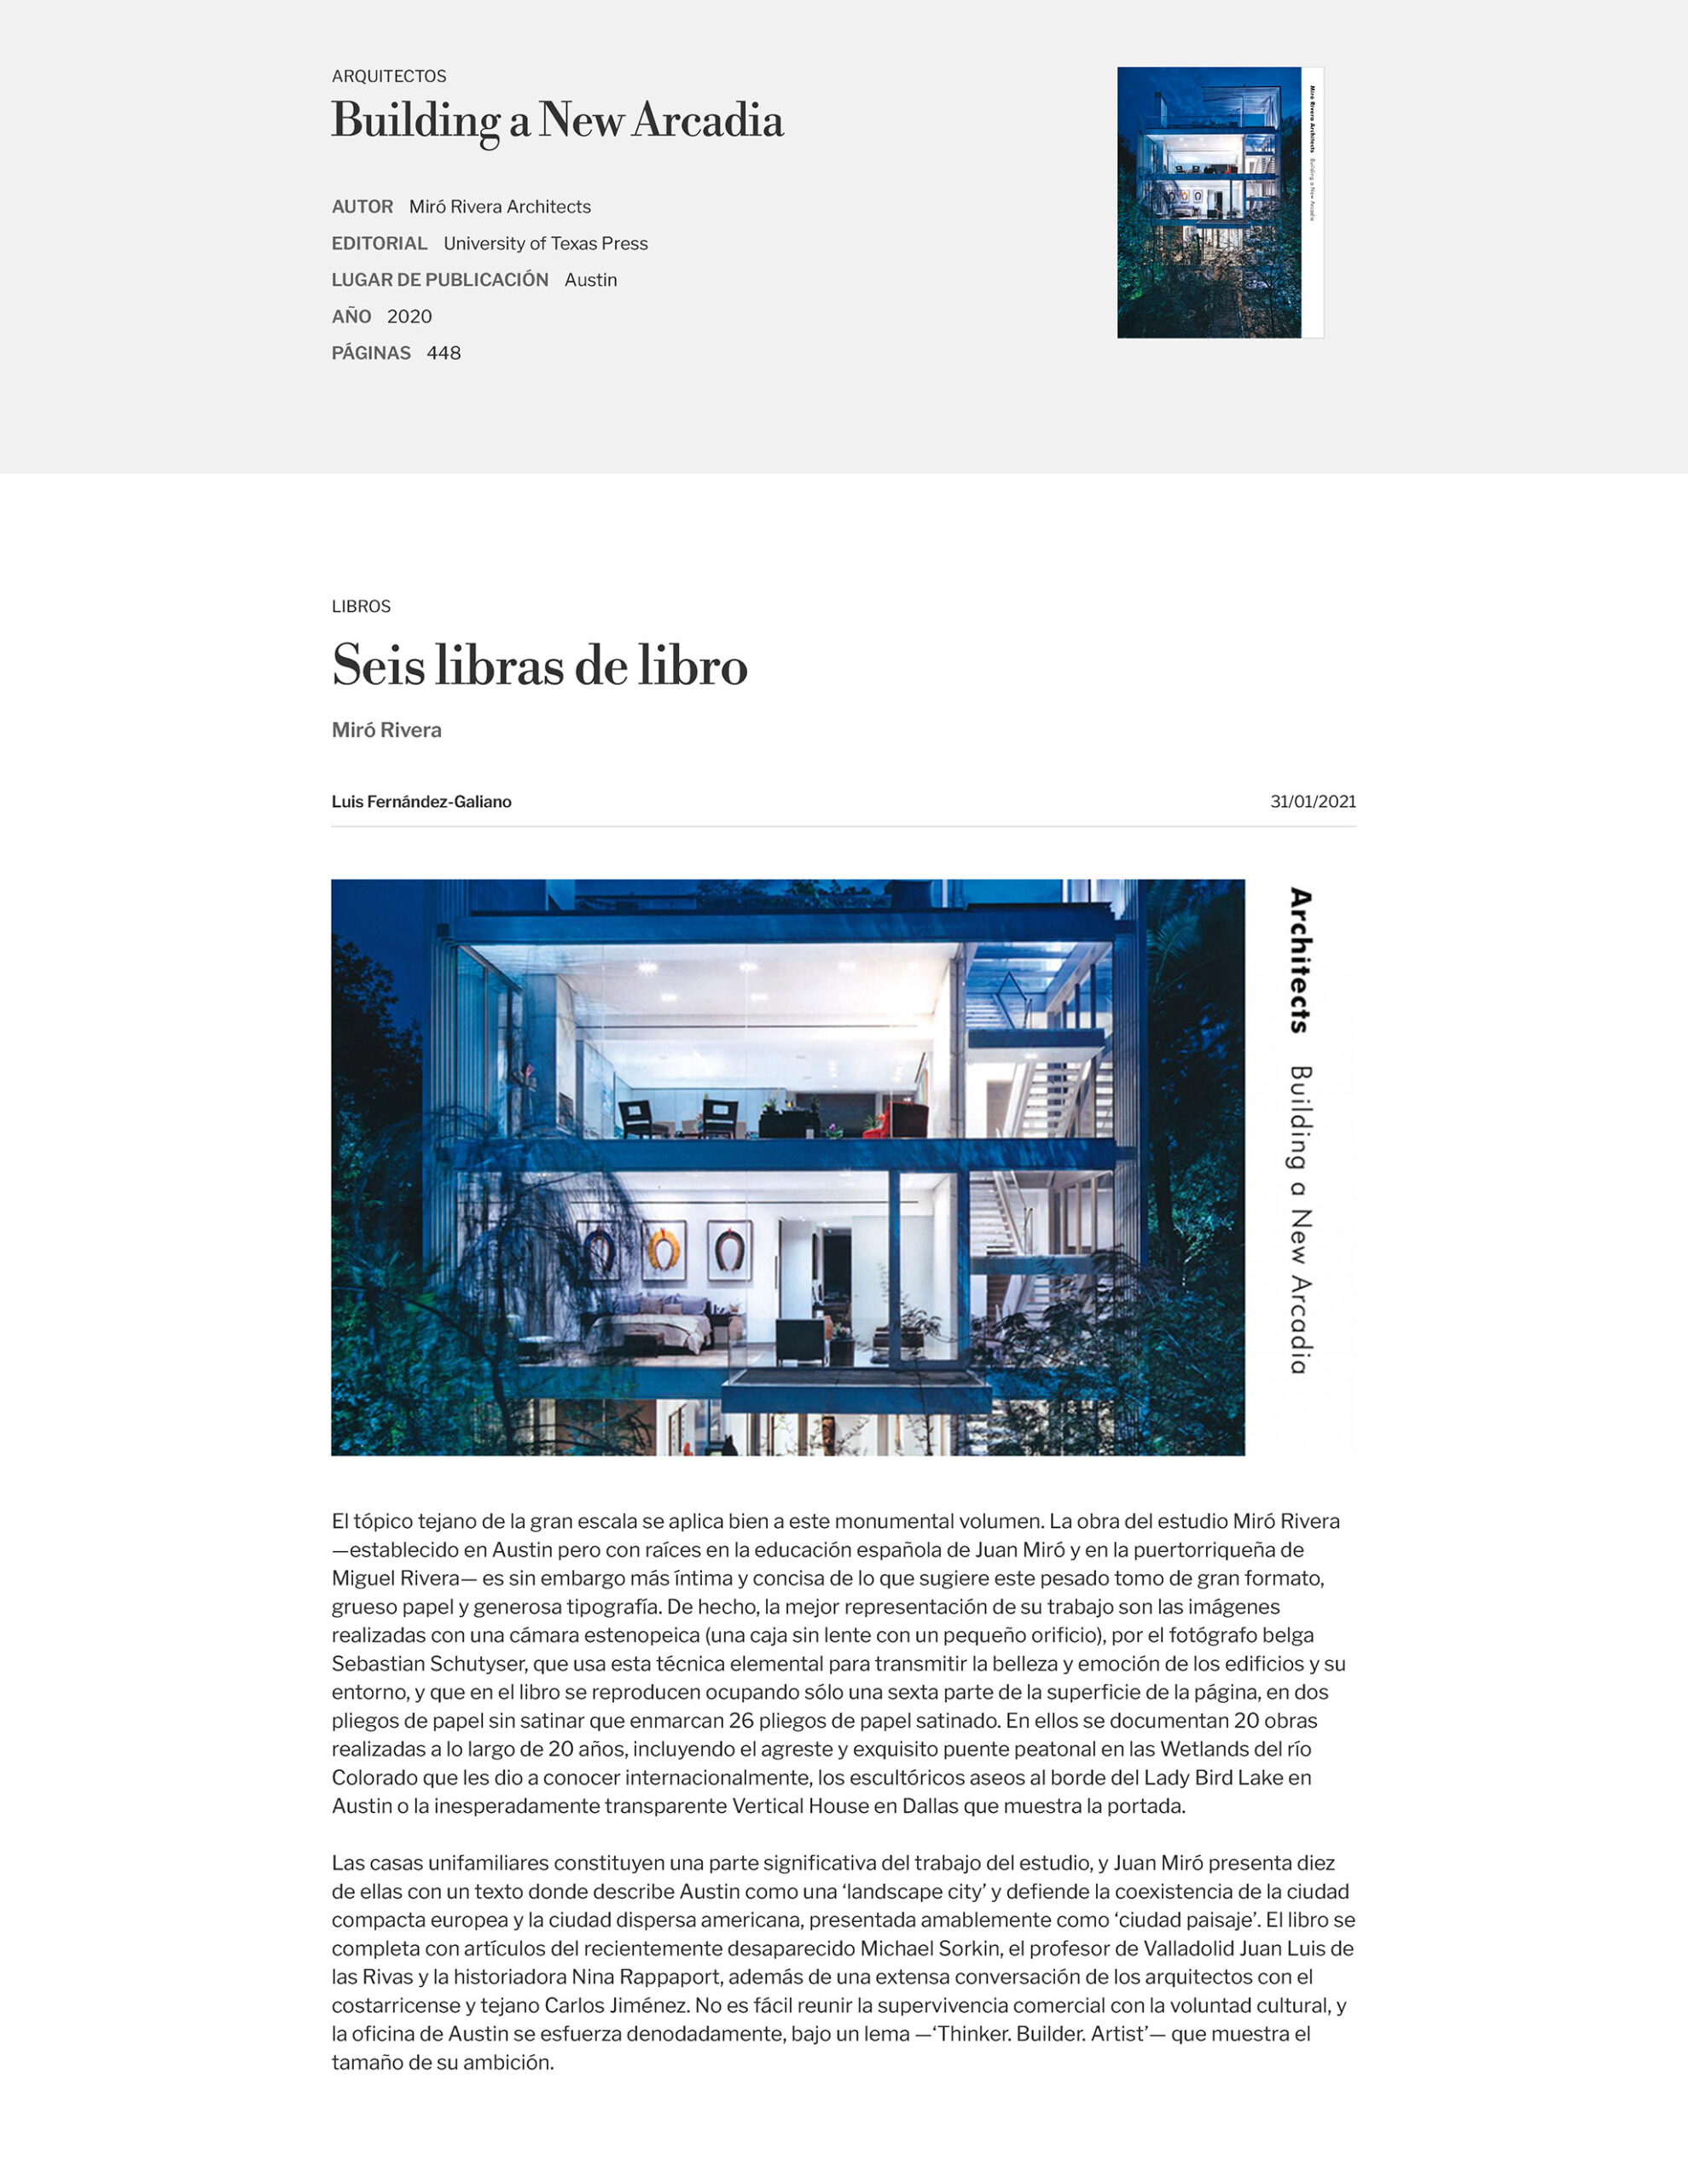 Book review of Miró Rivera Architects - Building a New Arcadia in Arquitectura Viva